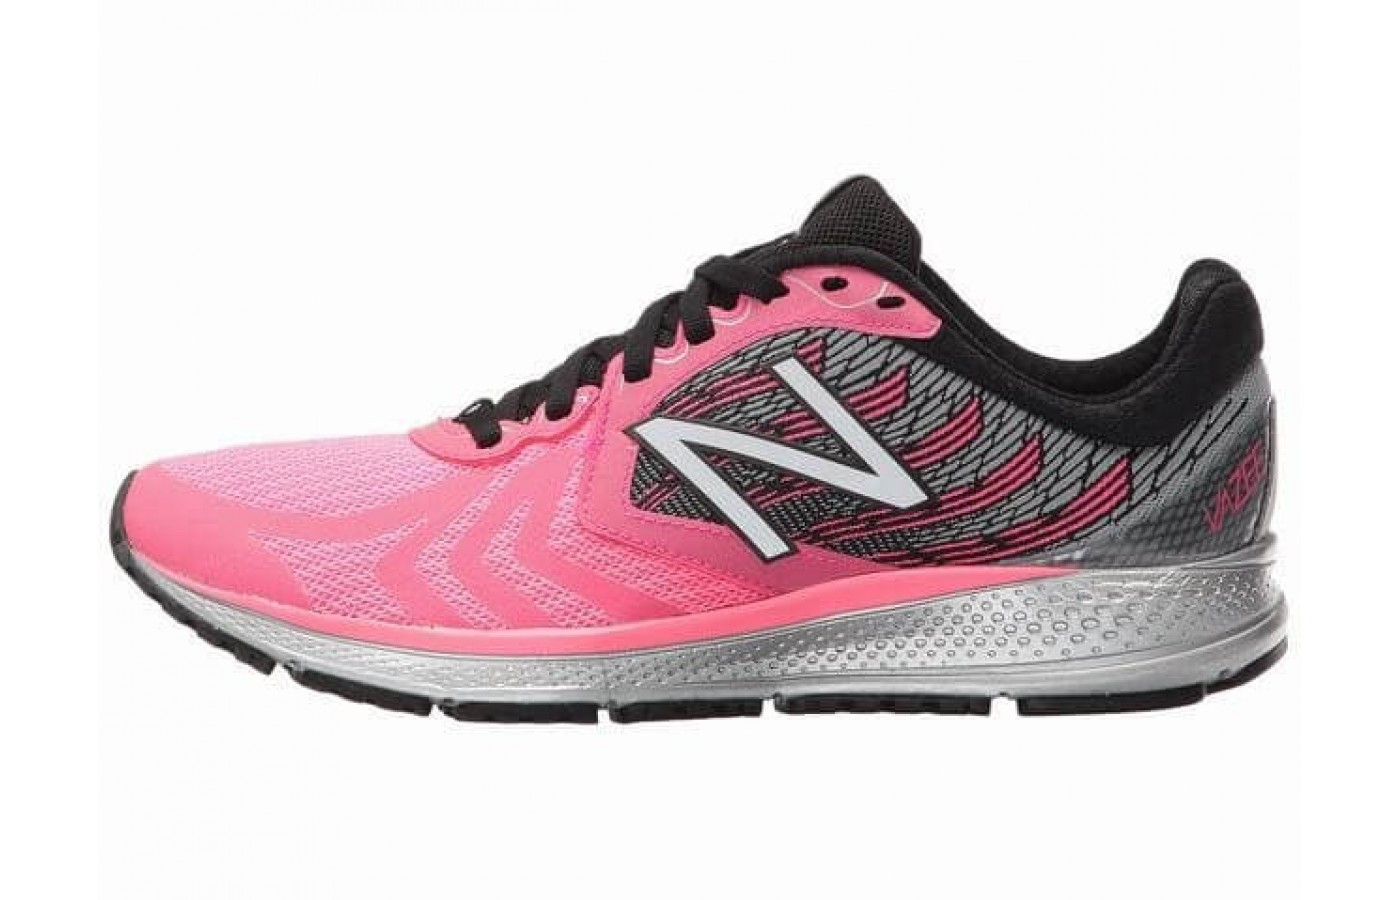 New Balance Vazee Pace v2 right to left